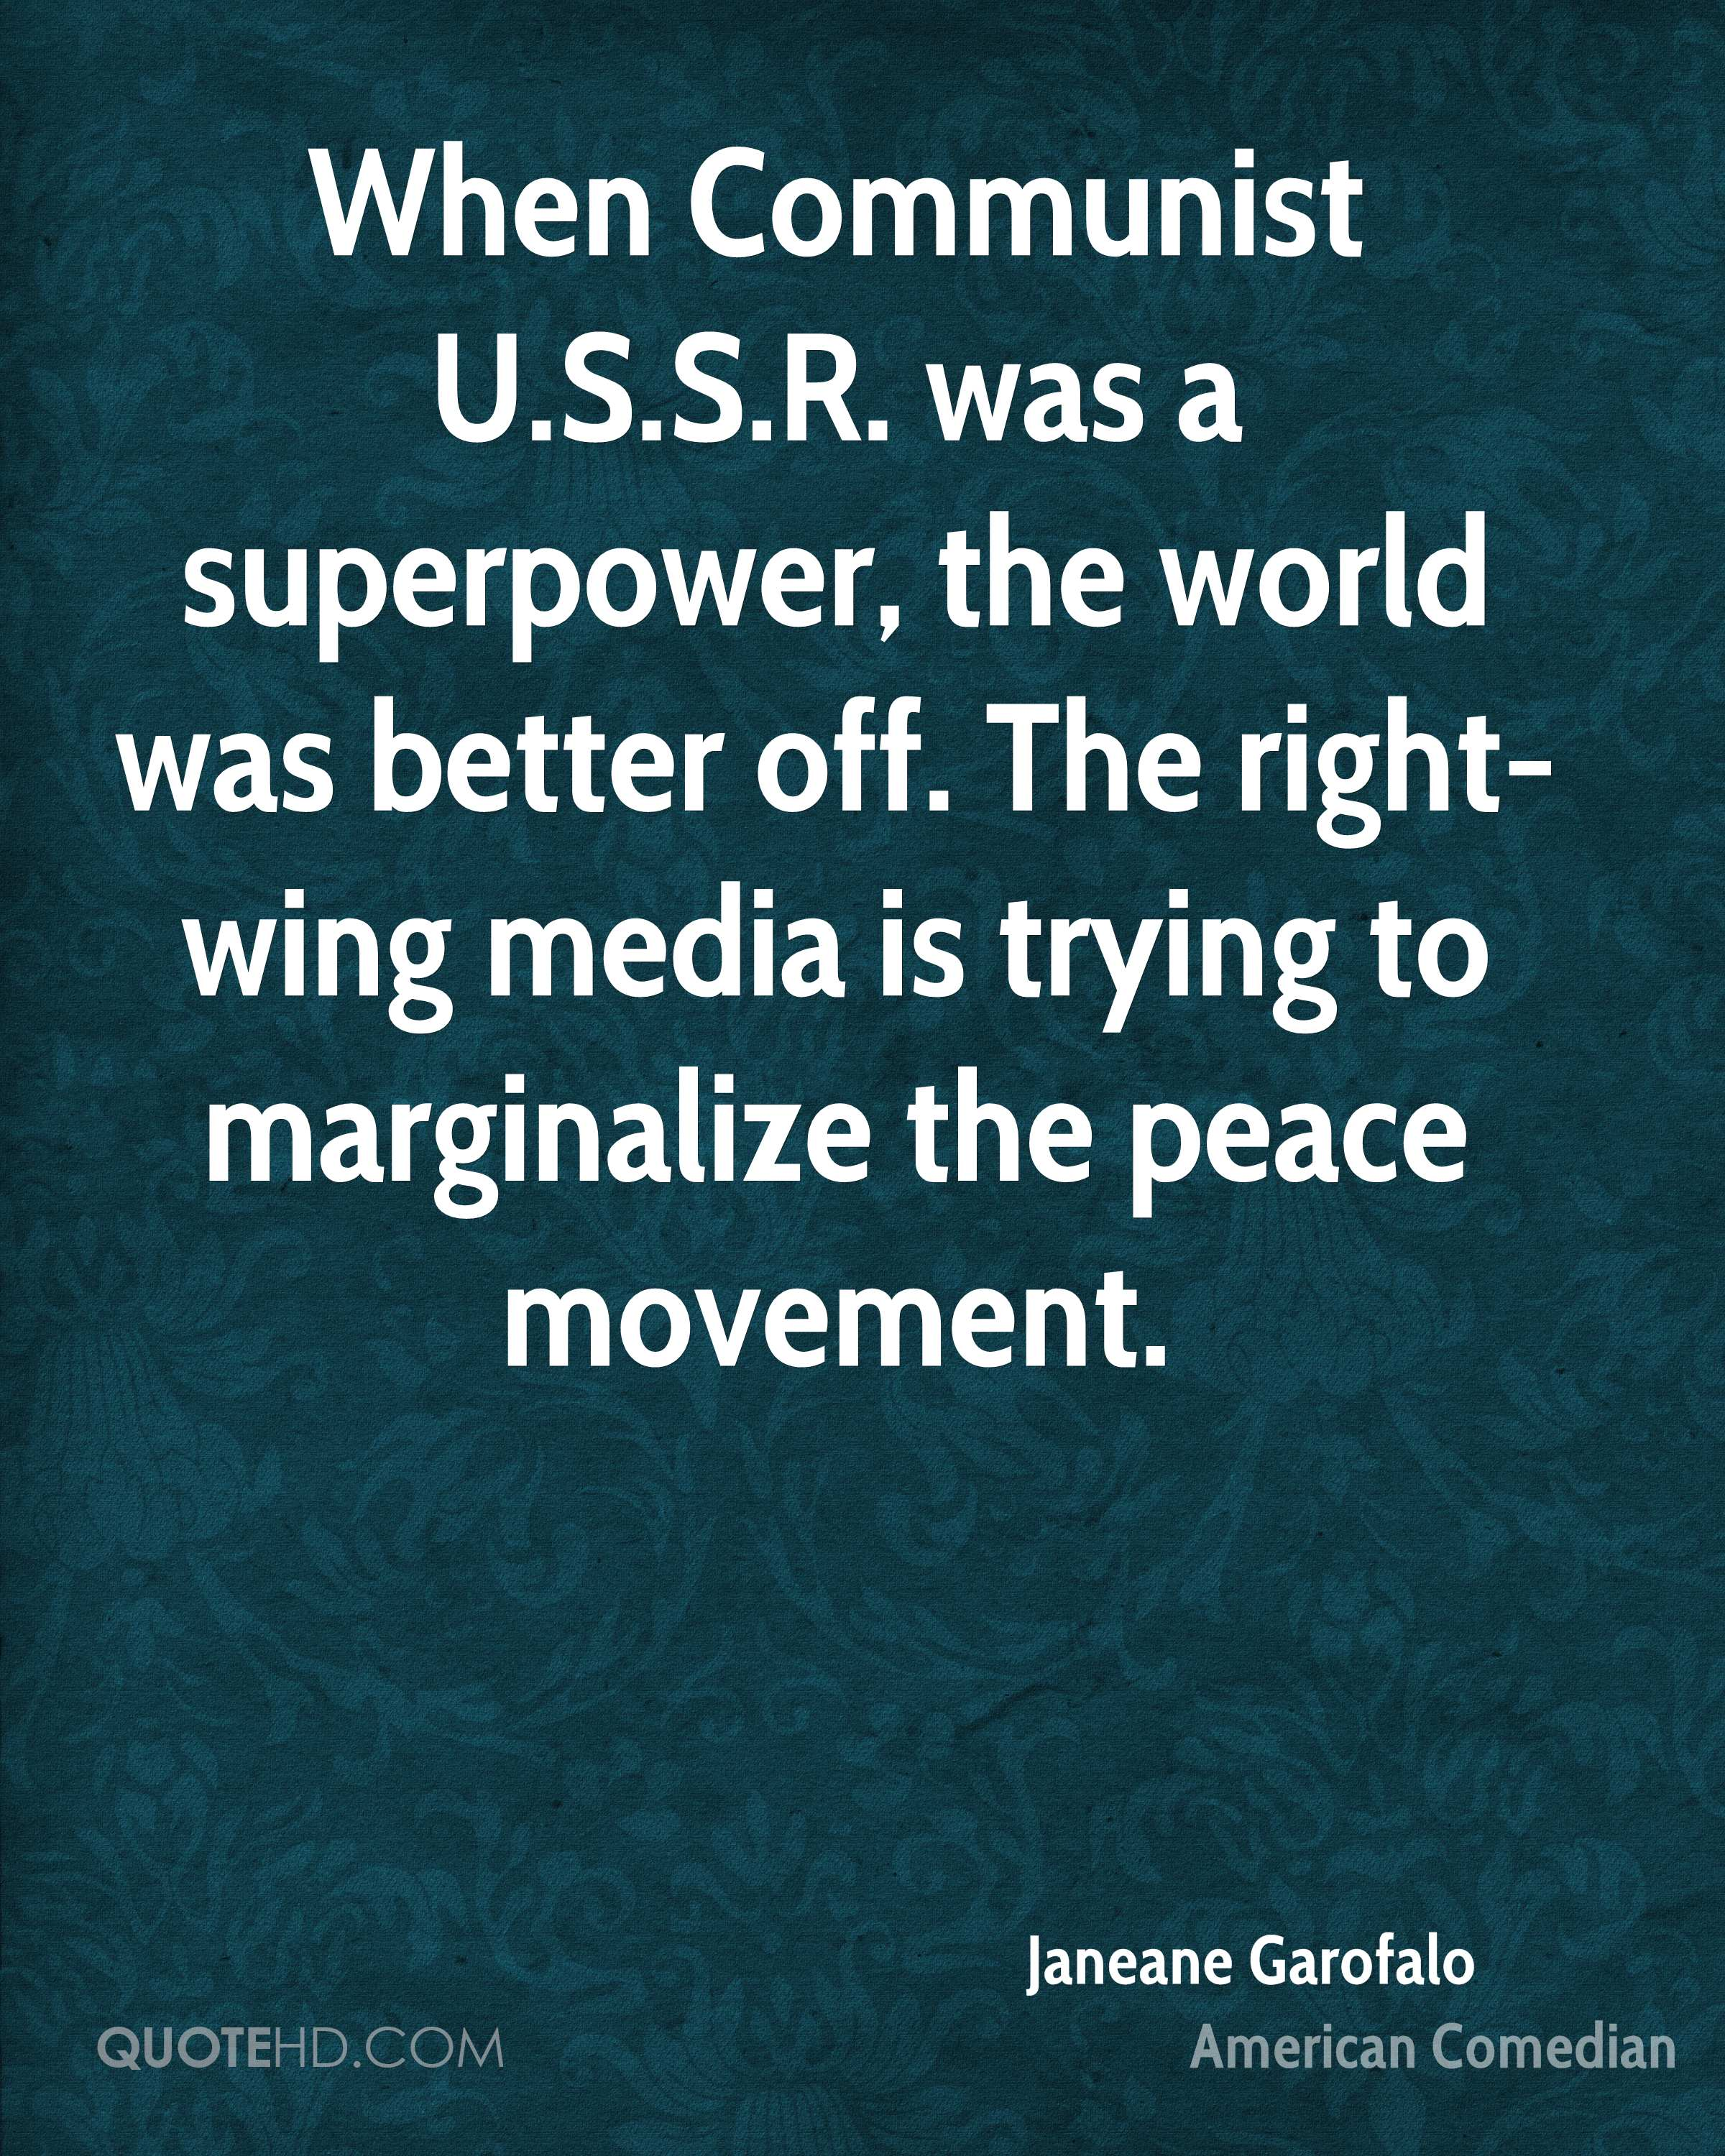 When Communist U.S.S.R. was a superpower, the world was better off. The right-wing media is trying to marginalize the peace movement.